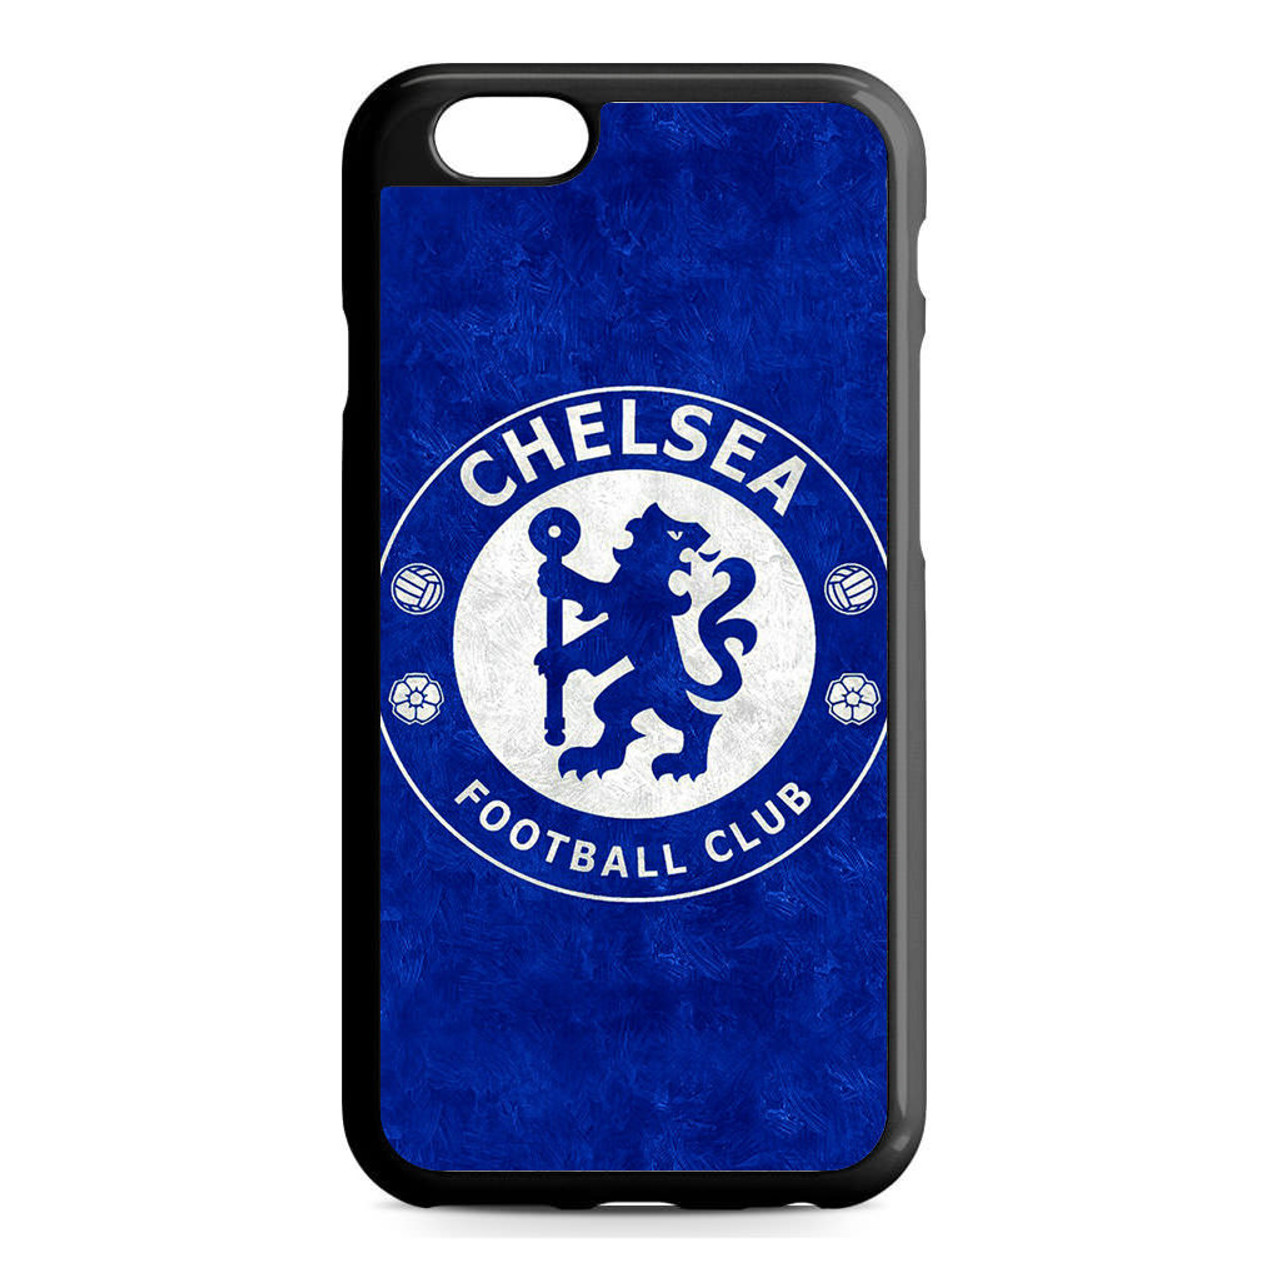 outlet store def7f 0d029 Chelsea Football Logo iPhone 6/6S Case